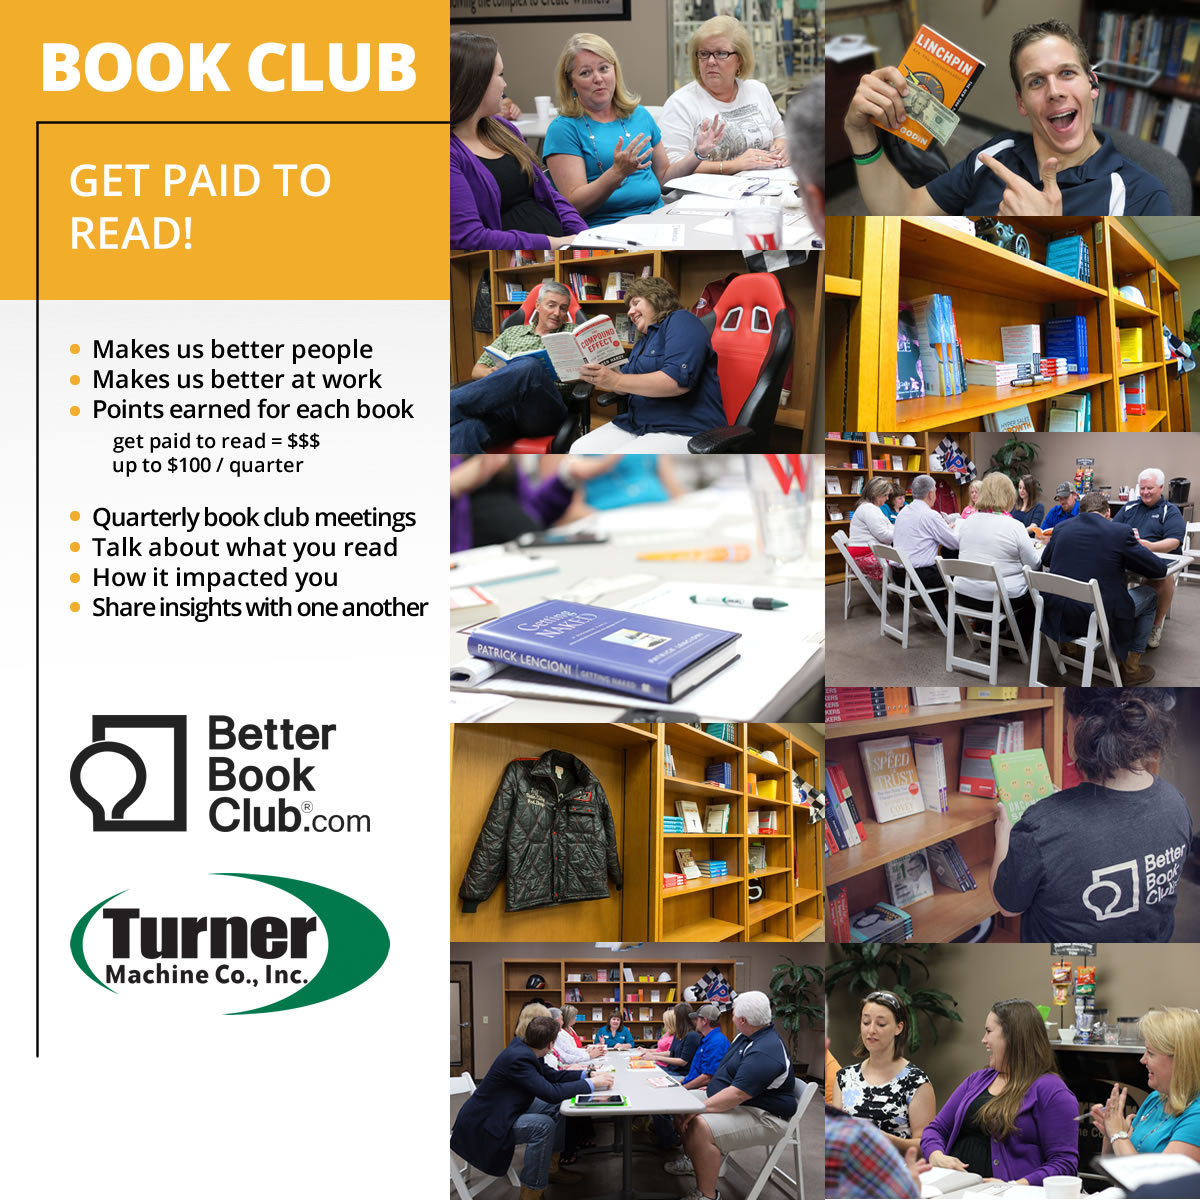 Better Book Club, What Makes Turner Machine Better